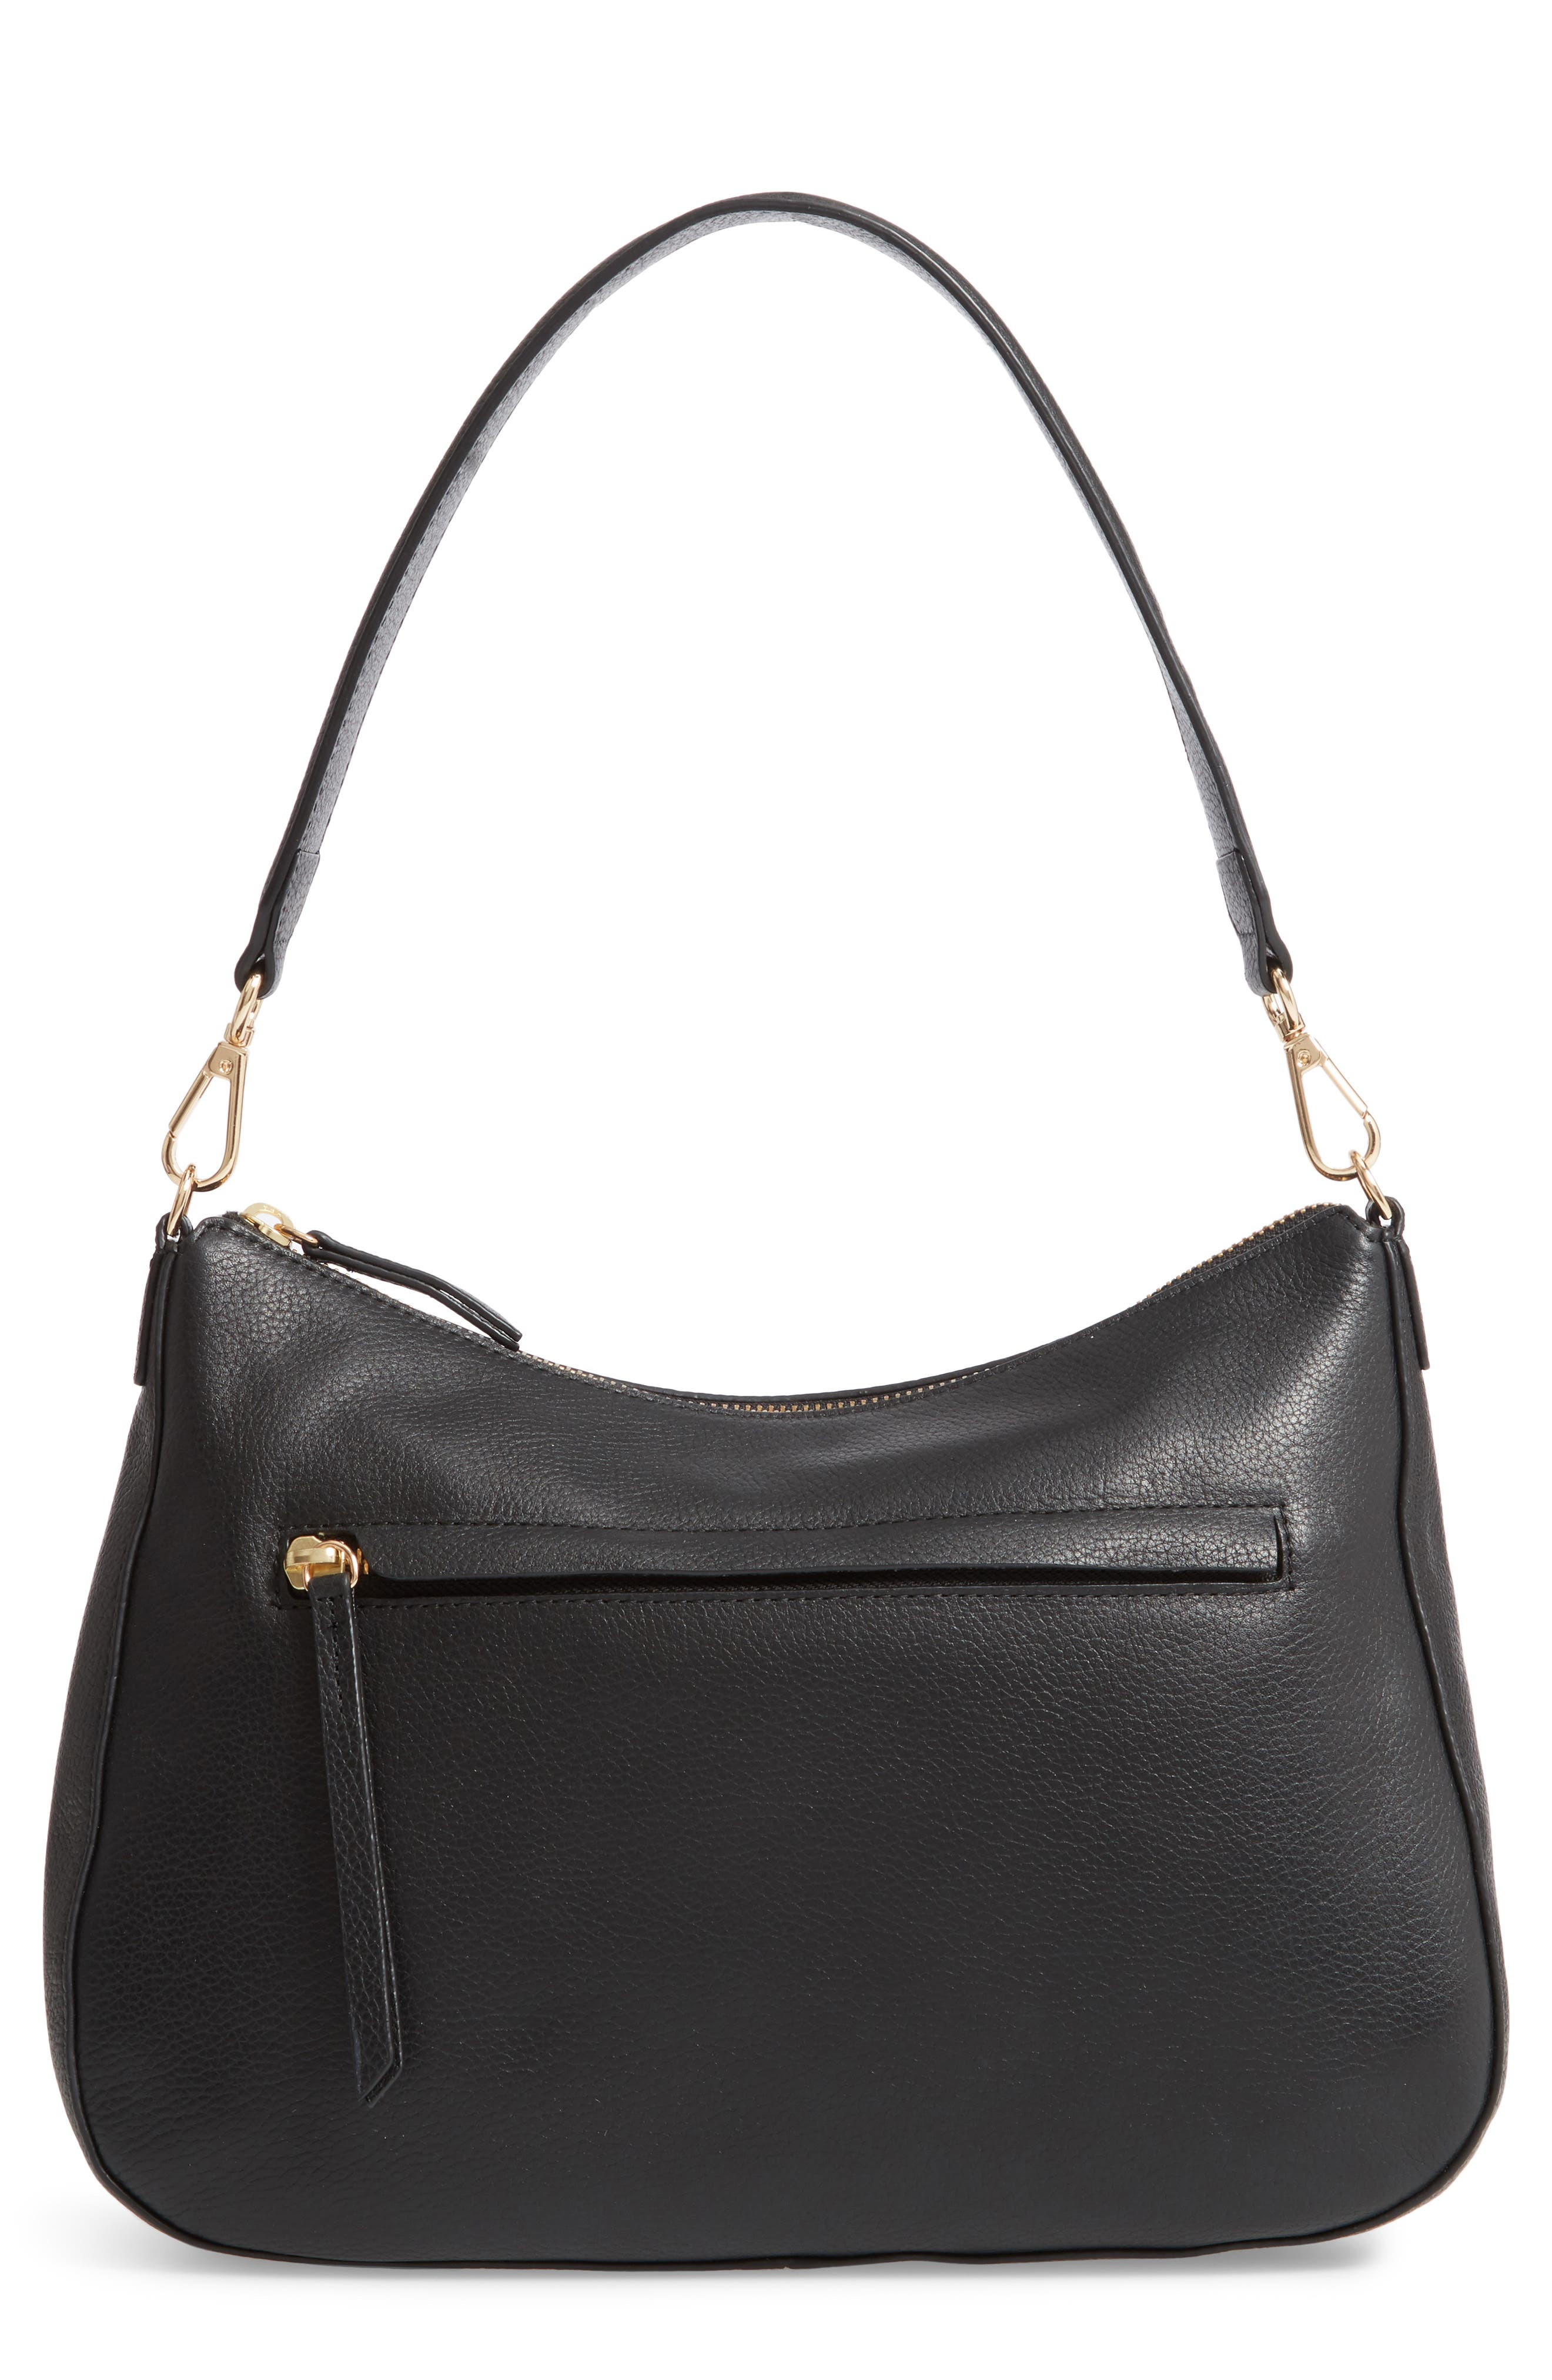 NORDSTROM Finn Convertible Leather Hobo, Main, color, BLACK